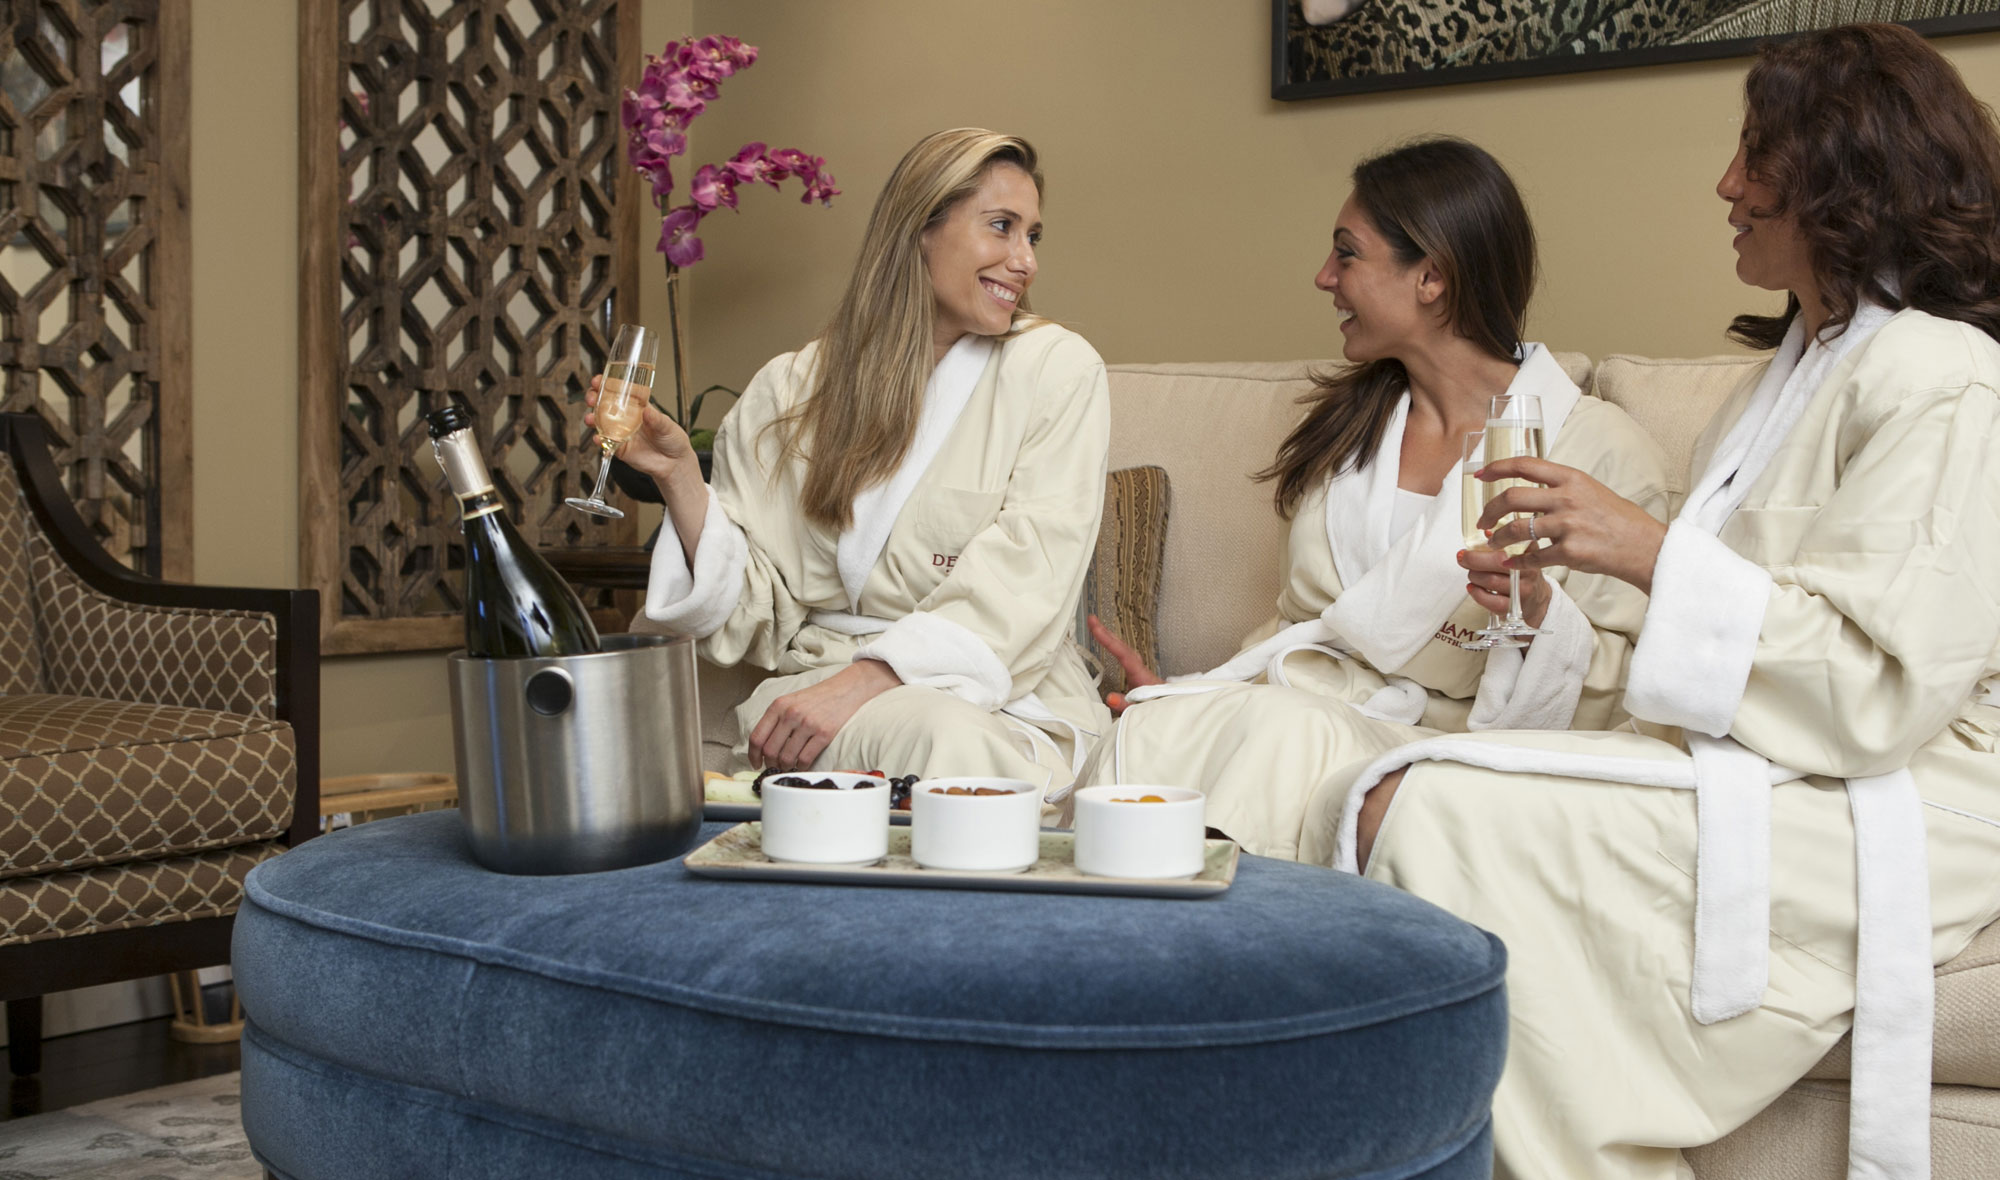 Delamar, Hotel, Southport, Luxury, Spa, Specials, Packages